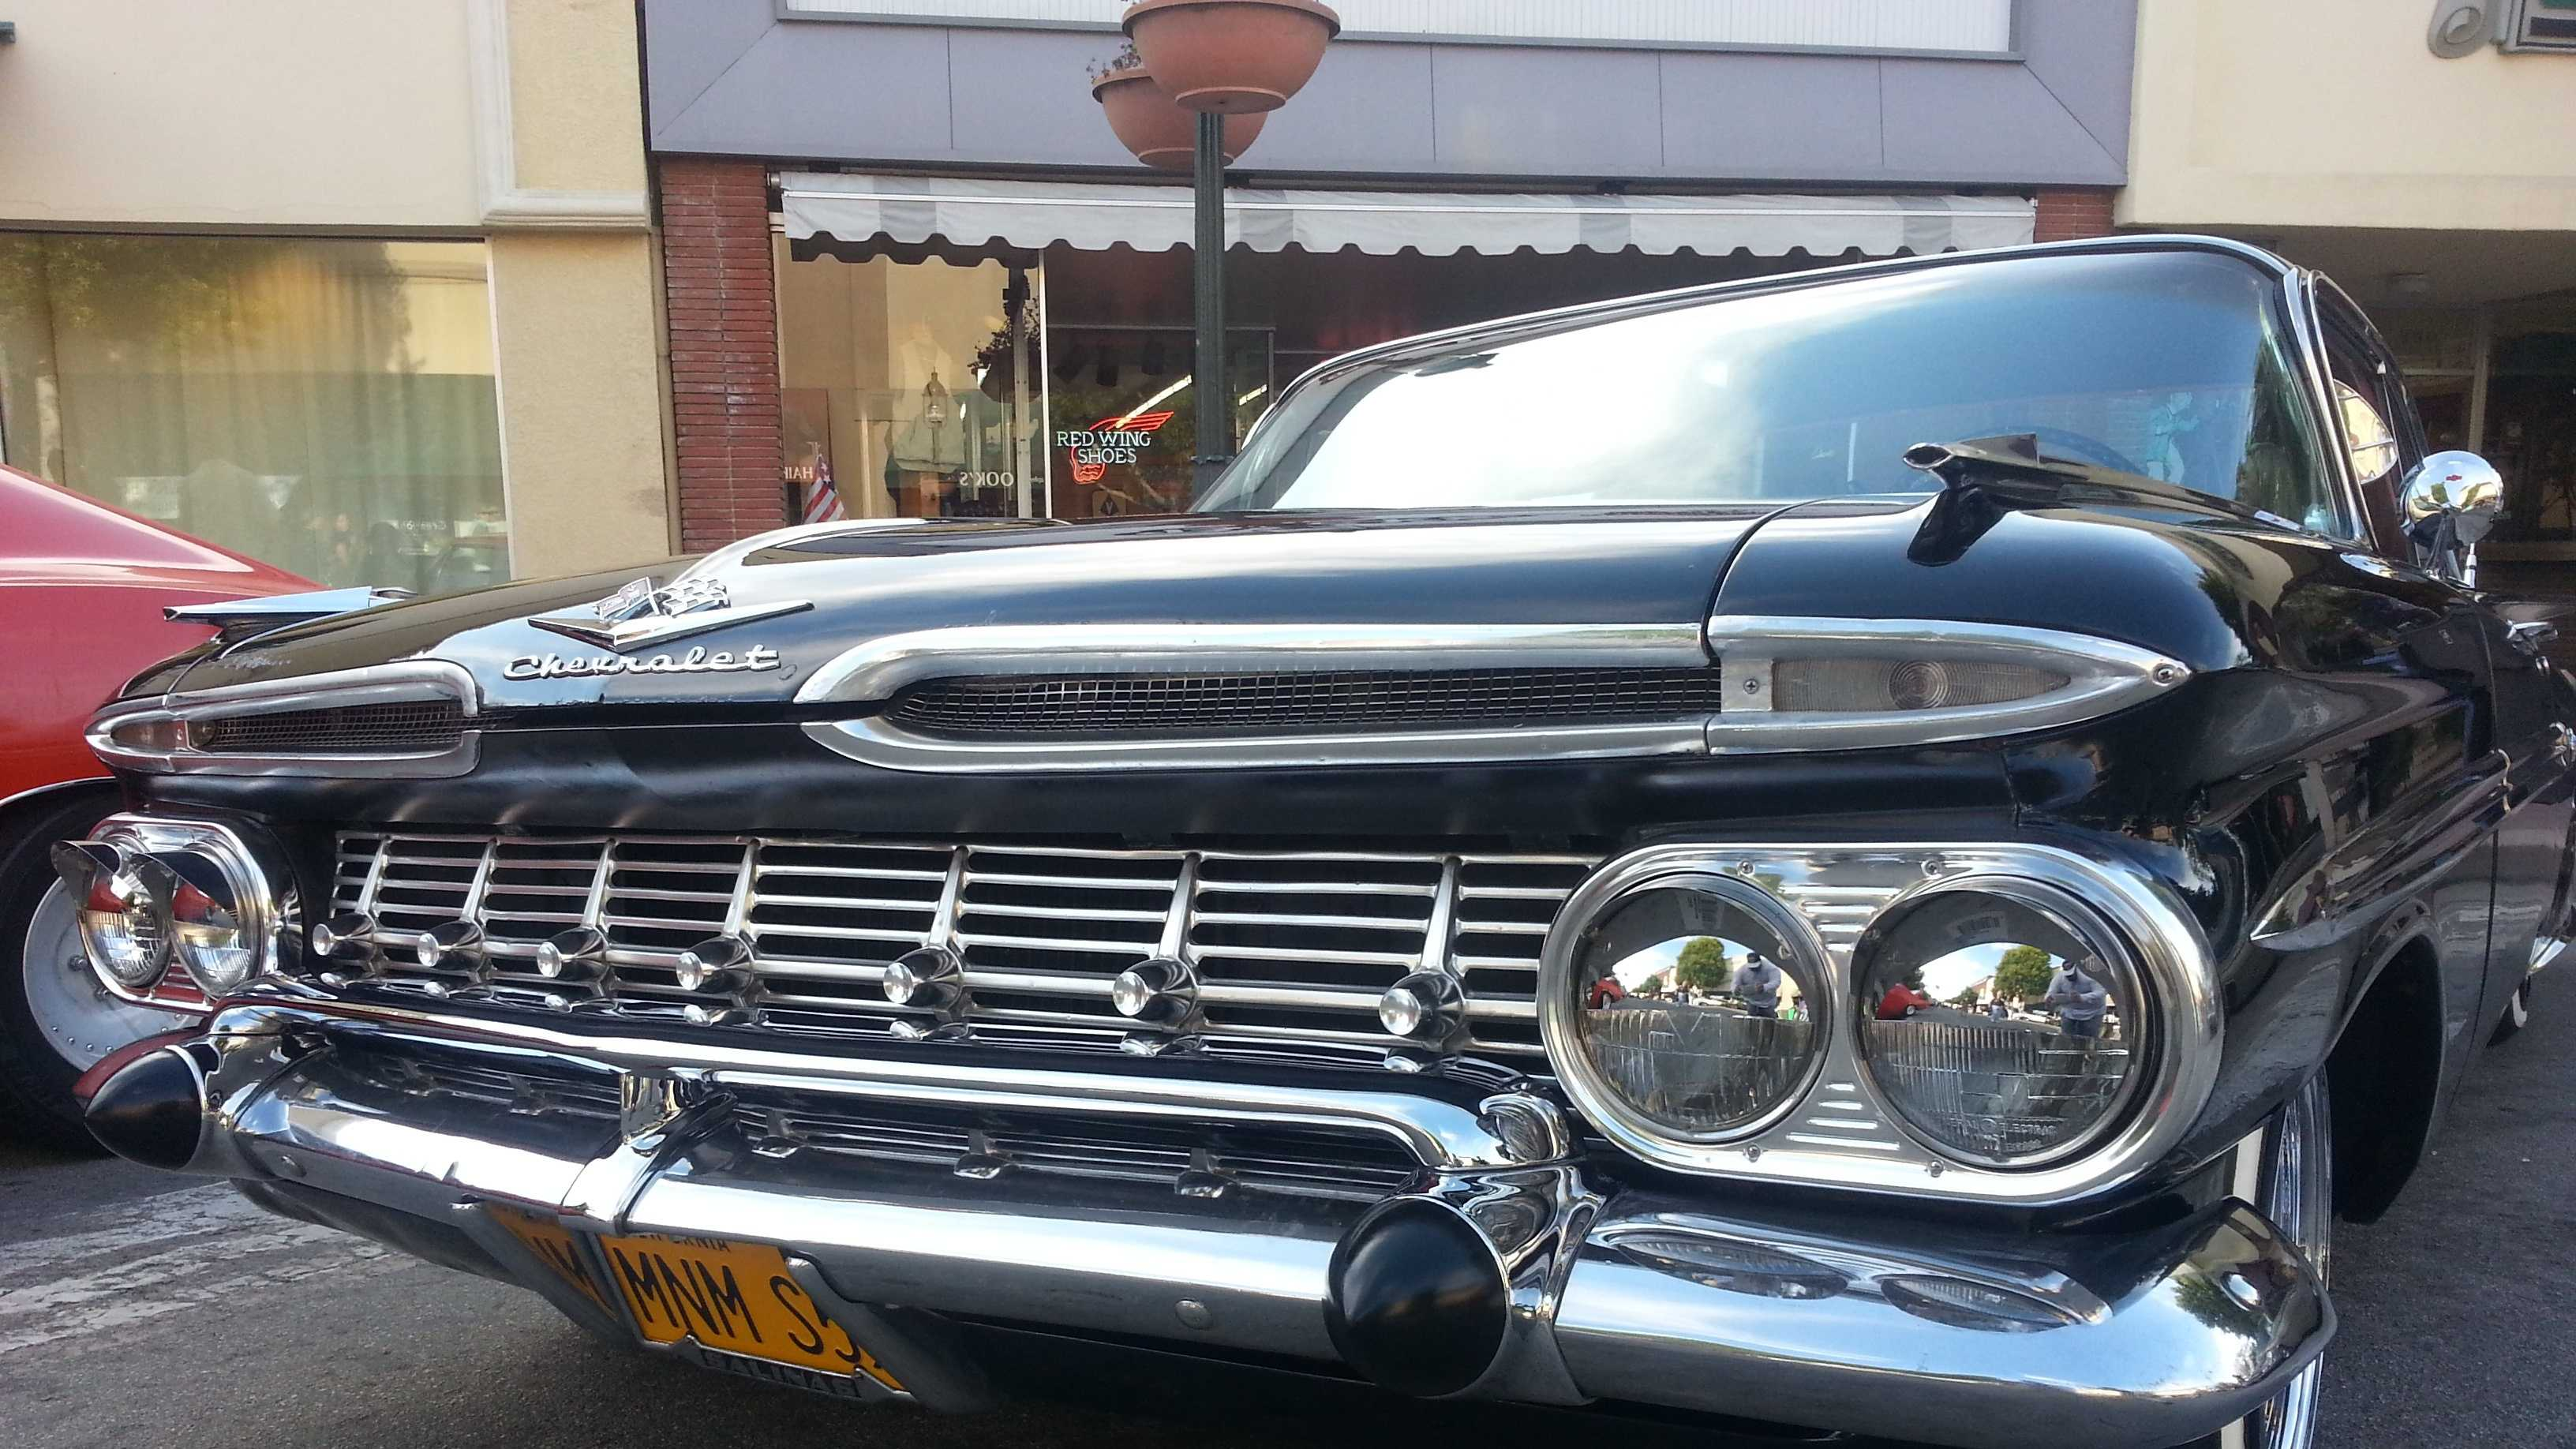 More than 250 classic cars roll into Passport to Oldtown